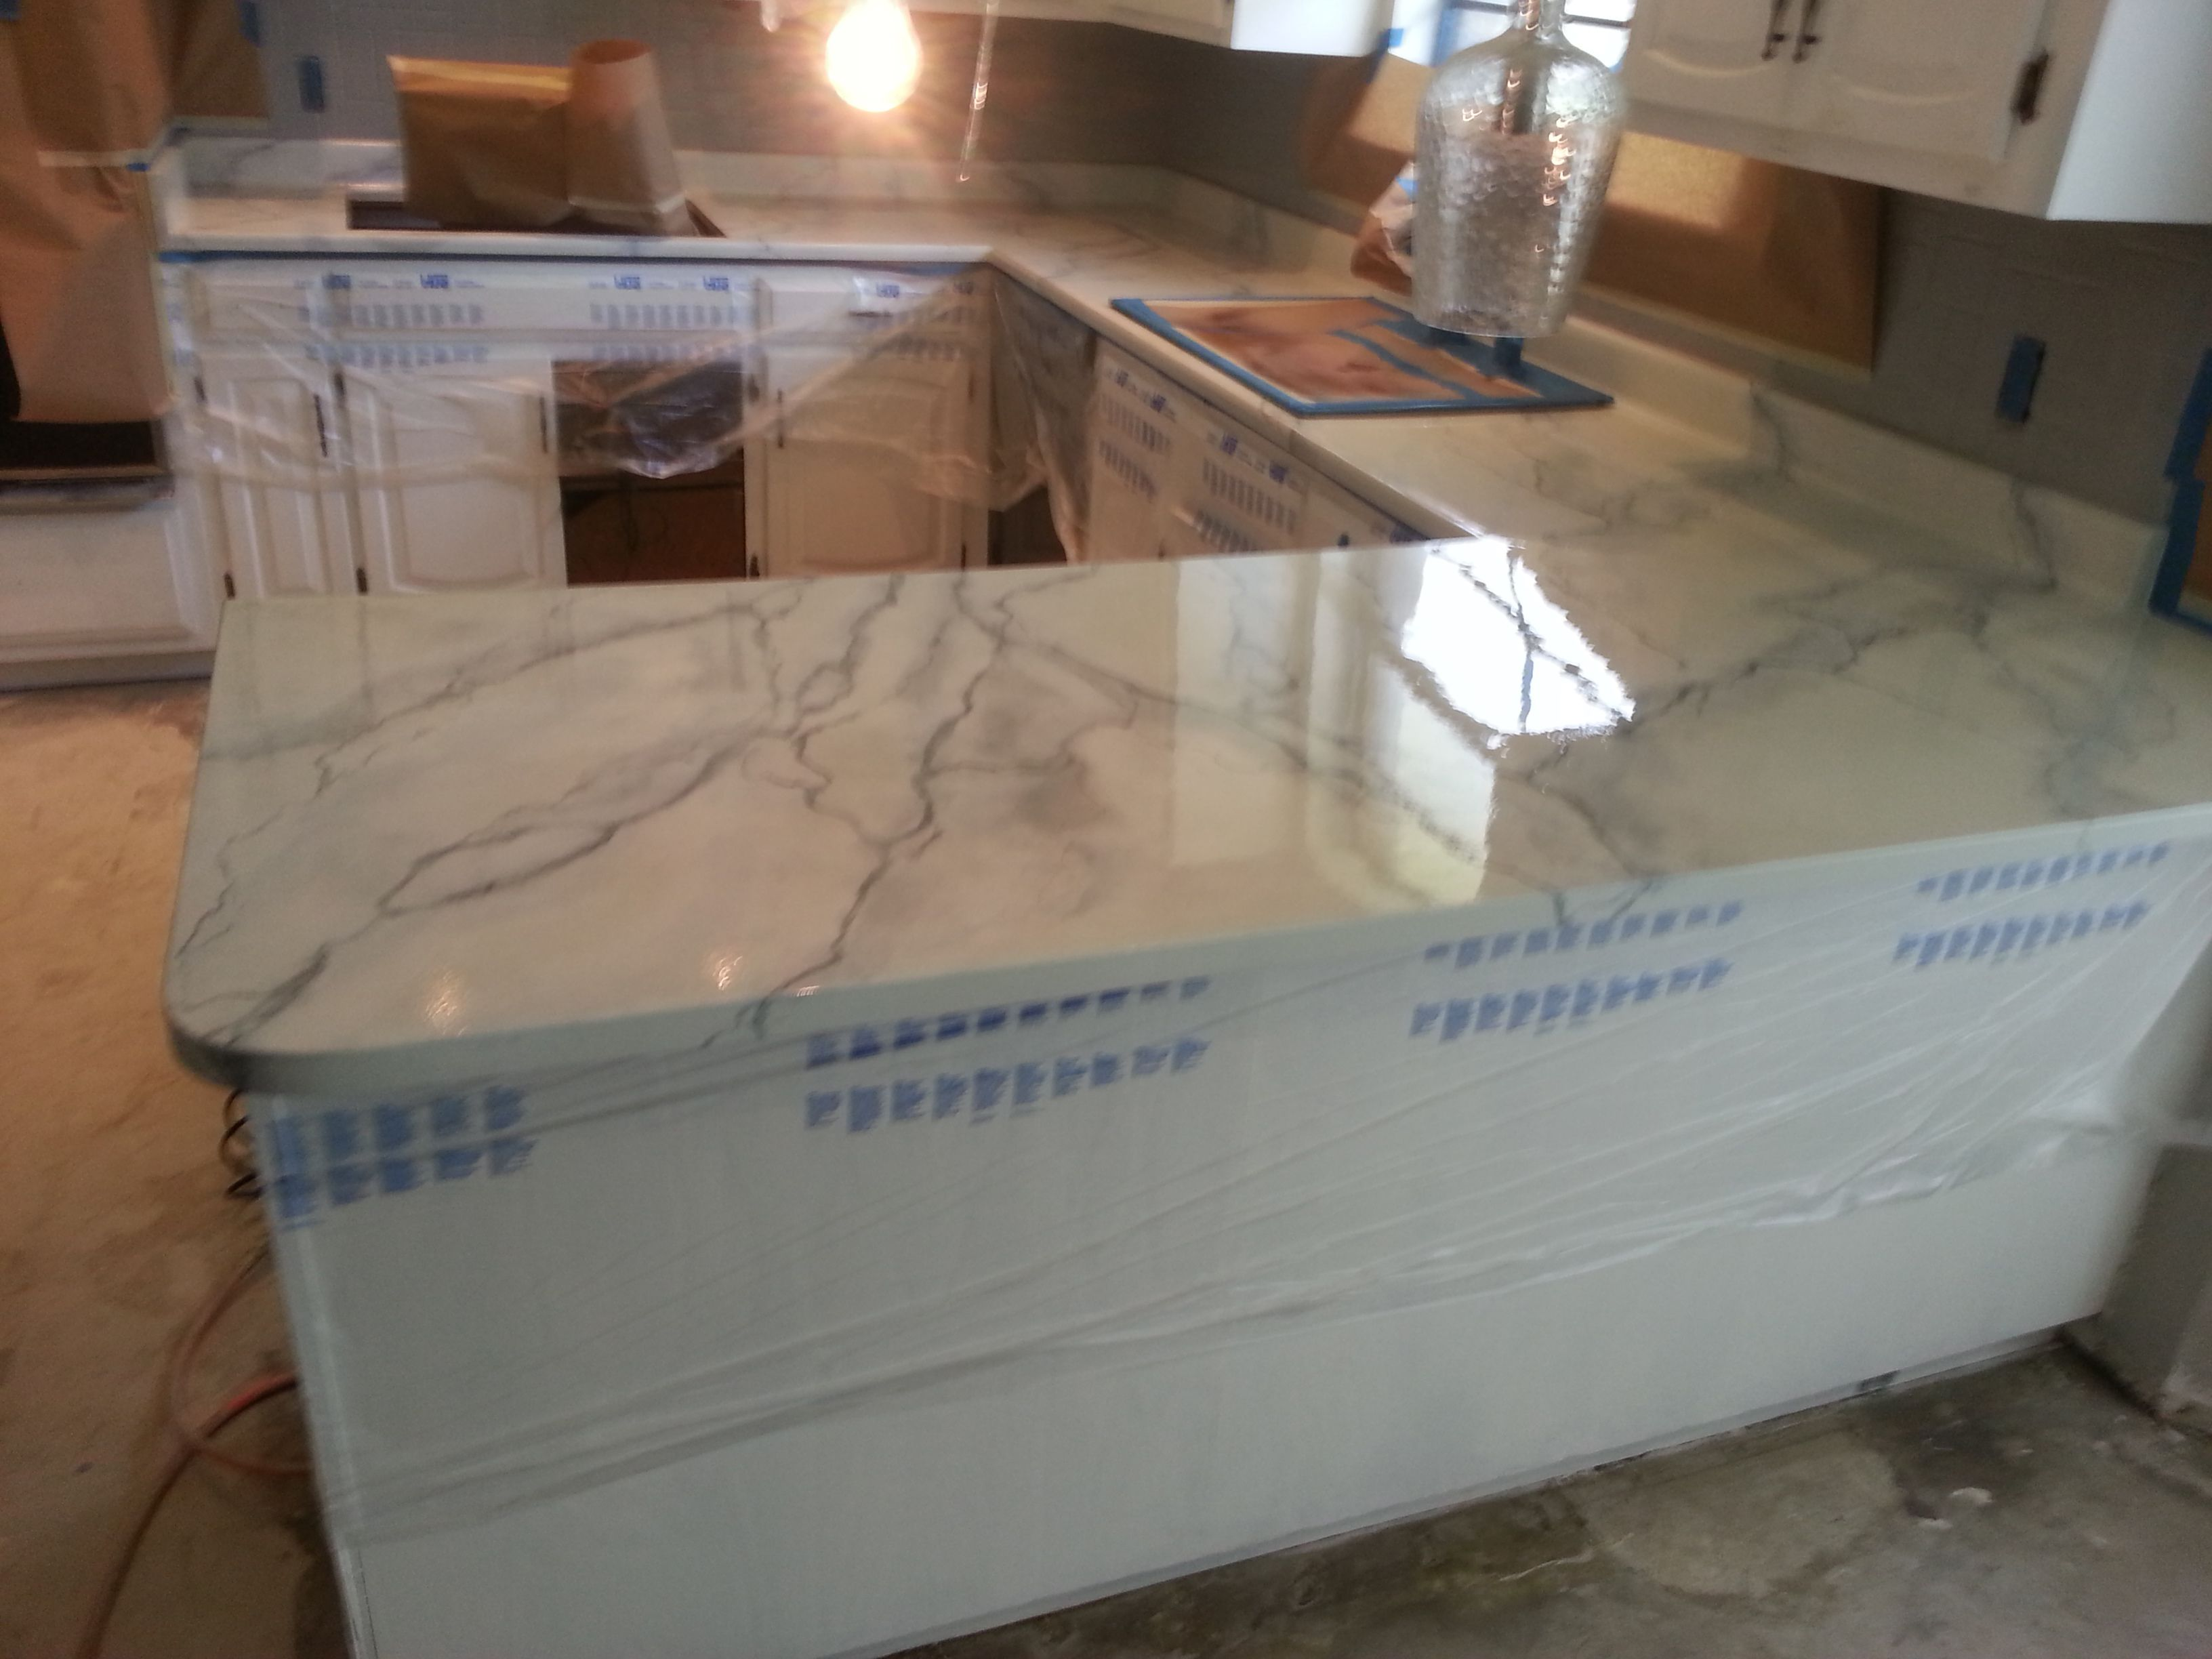 Laminate Countertops After Resurfaced to look like Carrara Marble  Paddle Bathroom in 2019